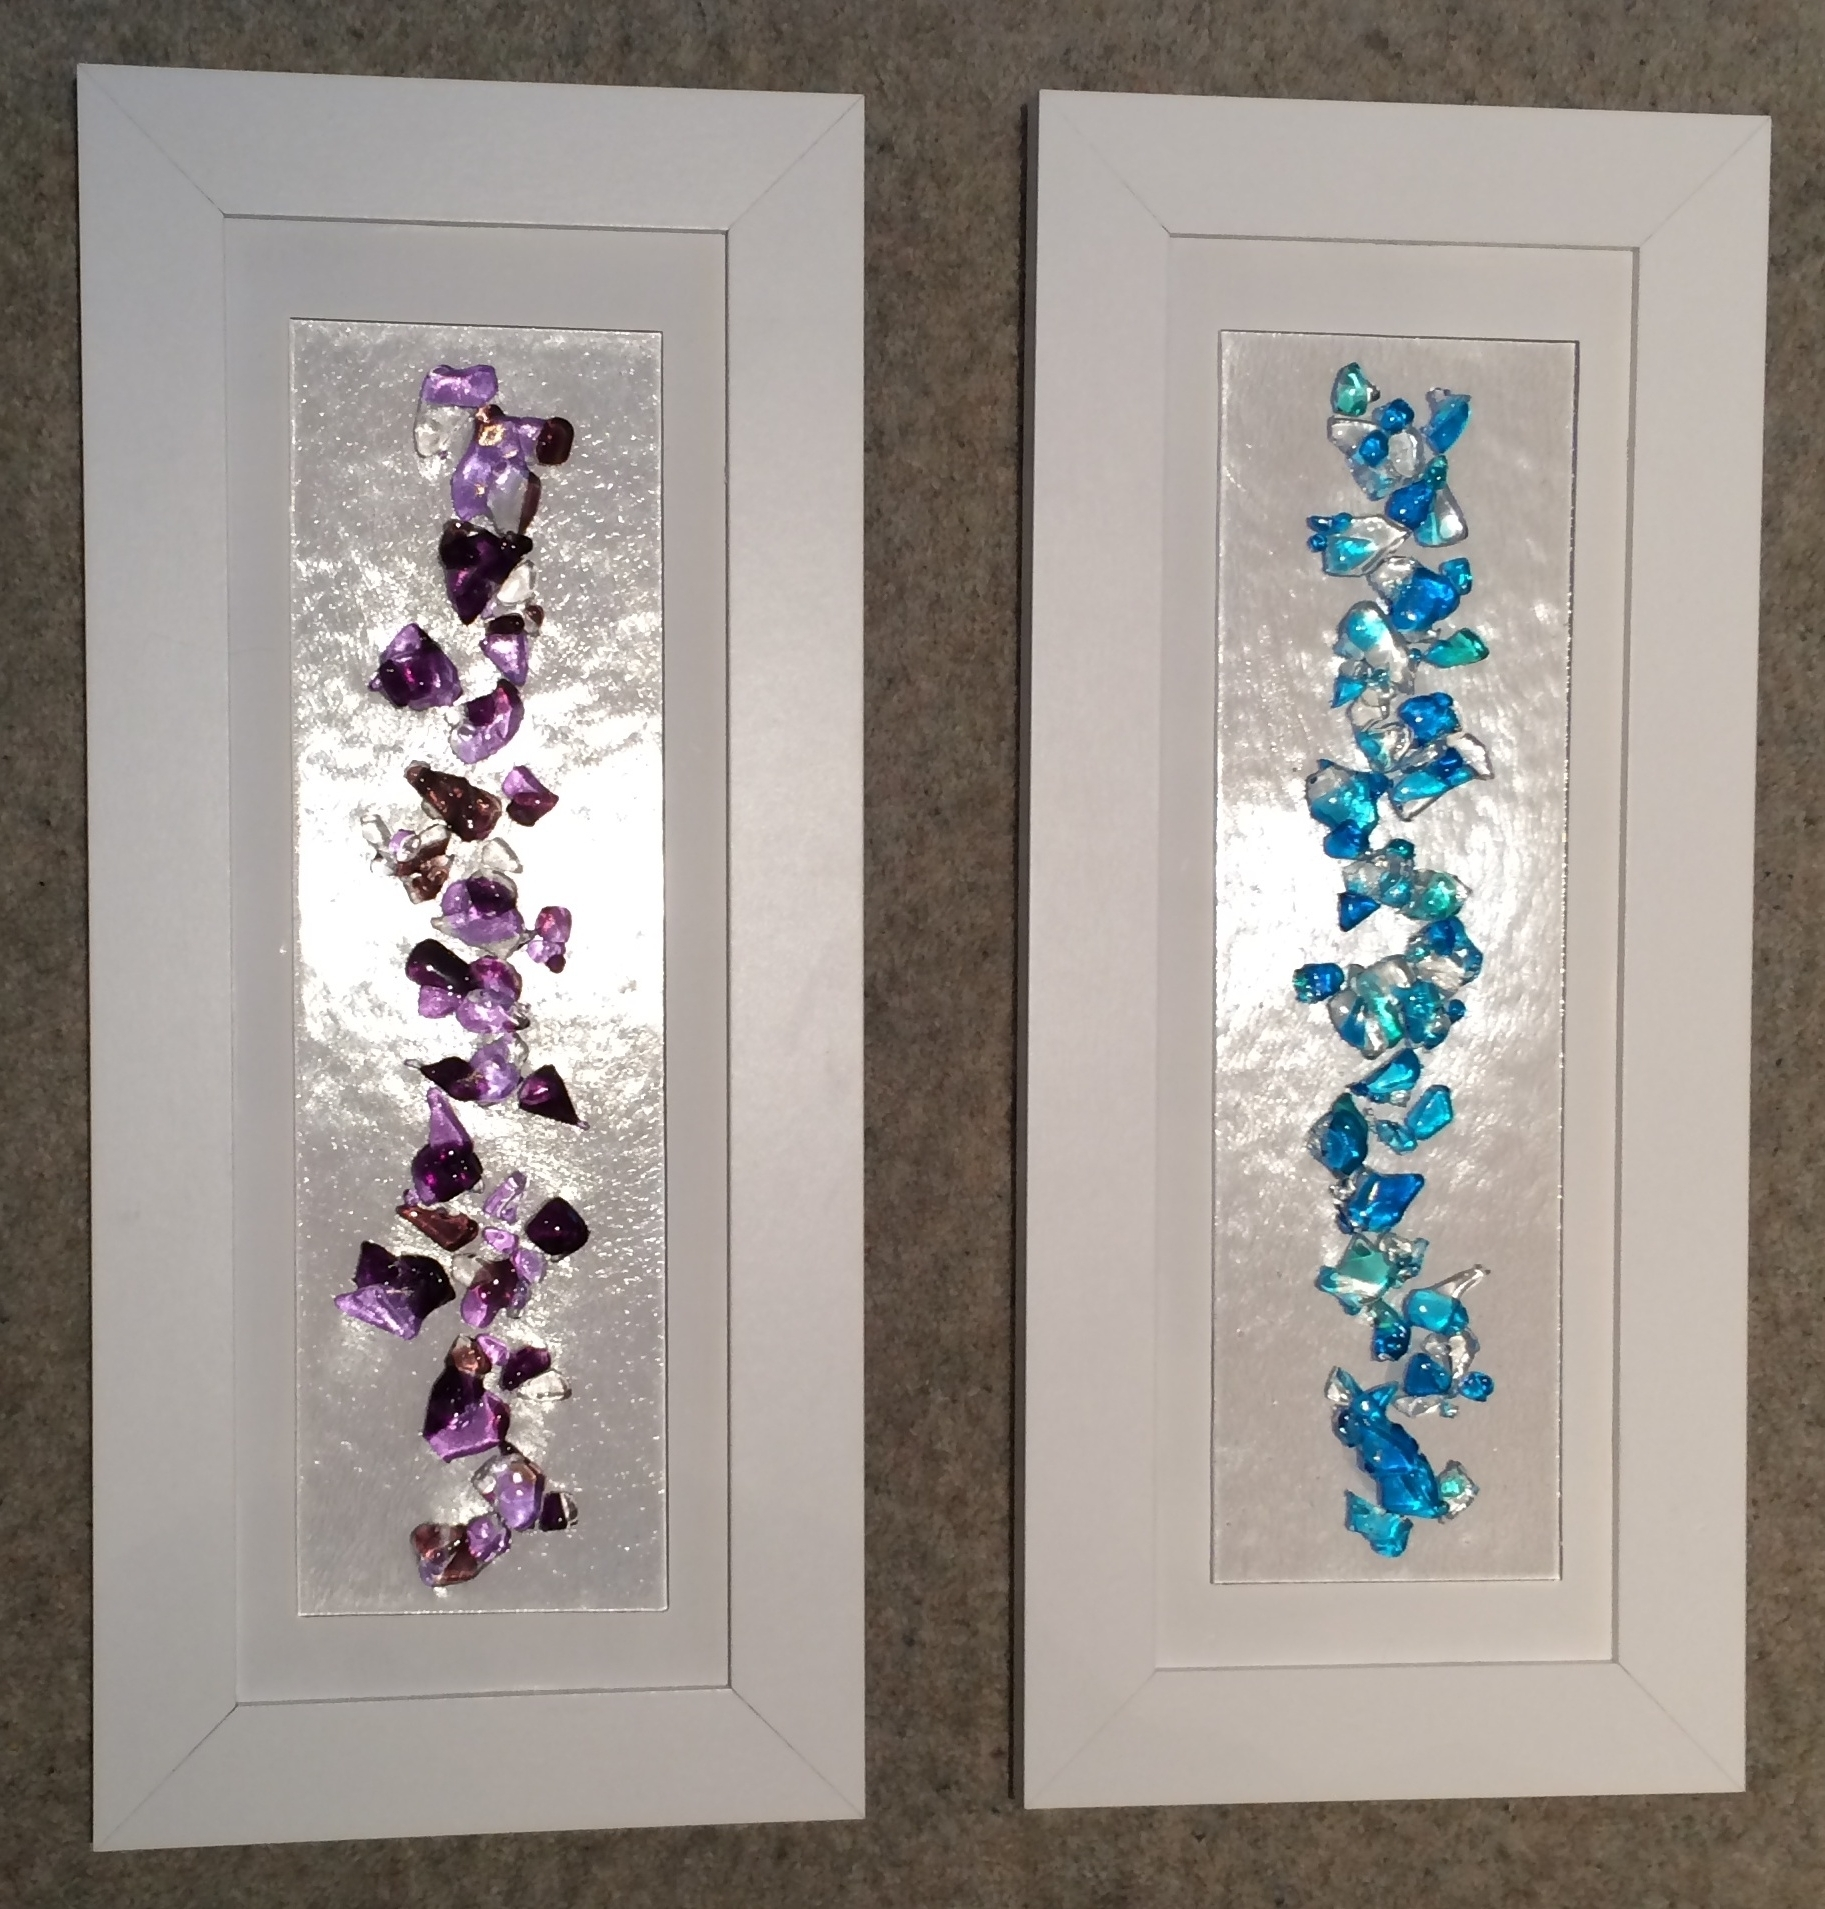 I Love Regarding Most Recent Cheap Fused Glass Wall Art (Gallery 1 of 15)